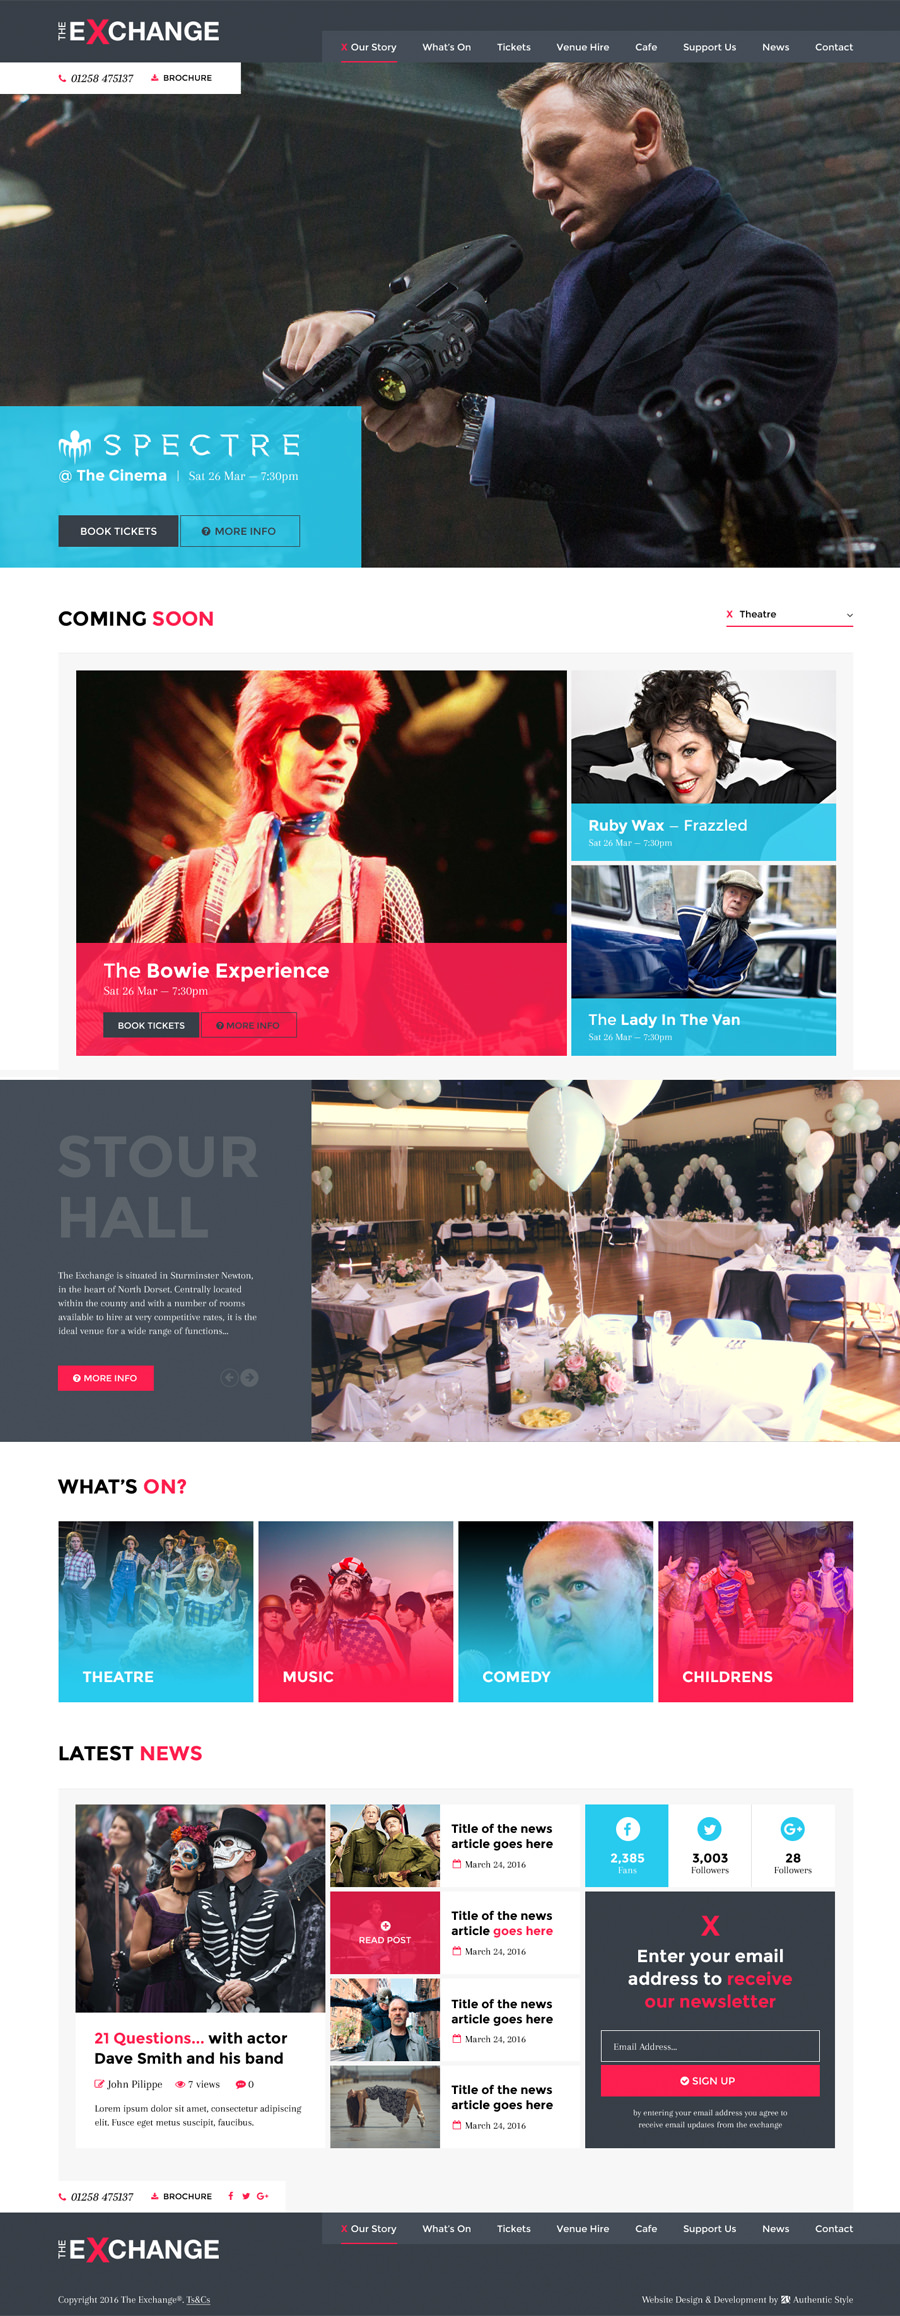 theatre-website-design-dorset-the-exchange